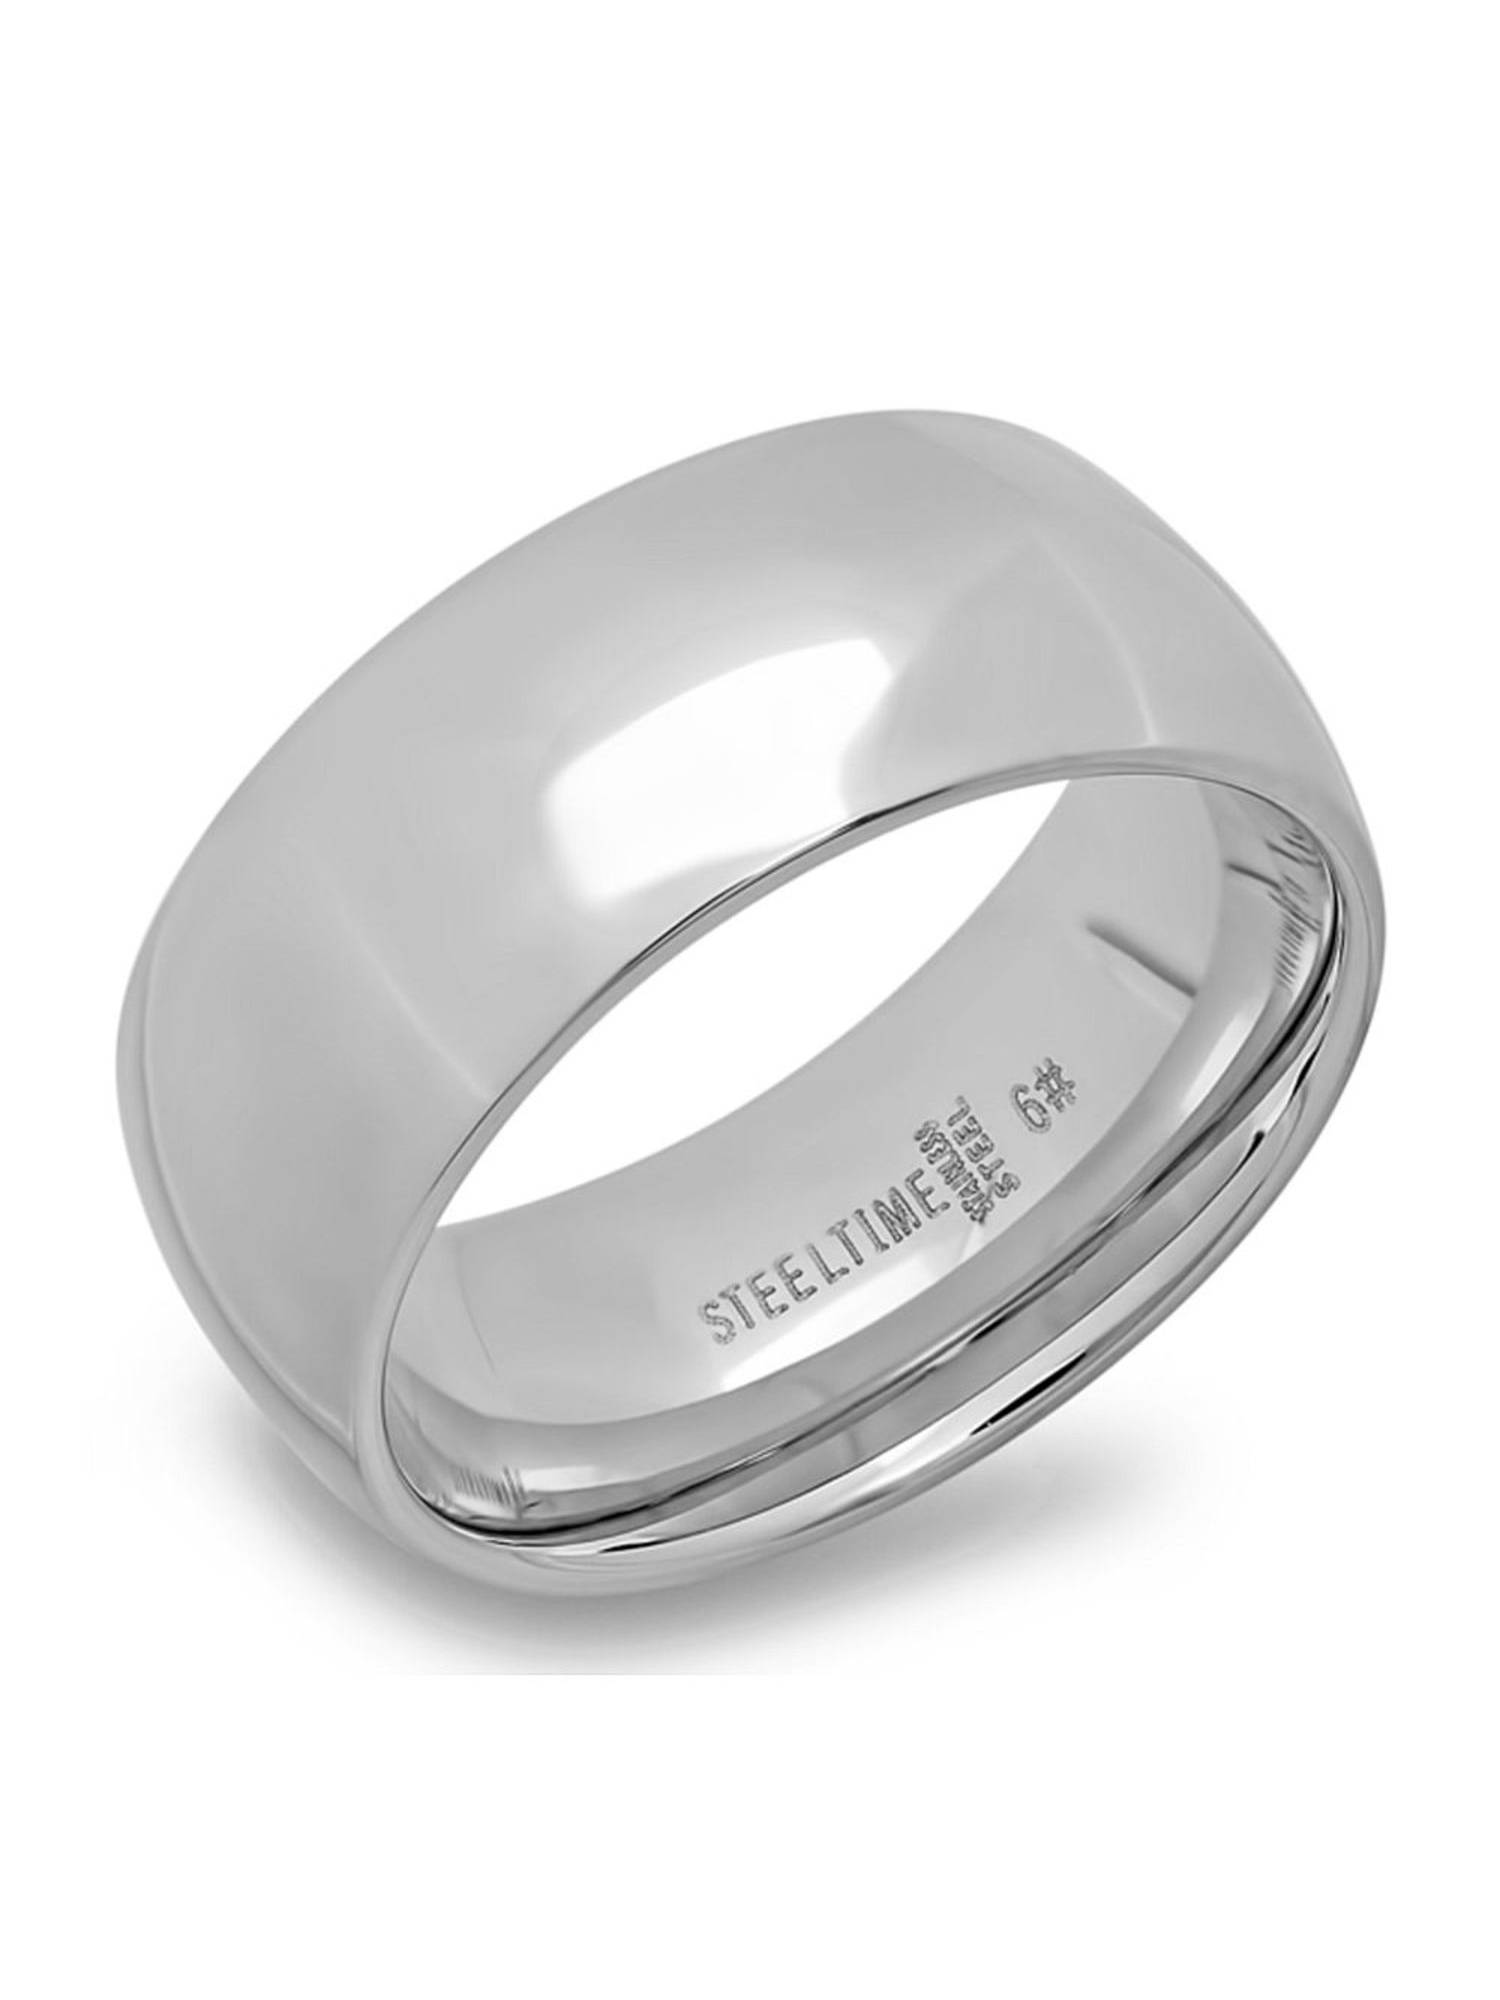 Stainless Steel High Polished Comfort Fit Men's Wedding Band Ring 8mm Wide